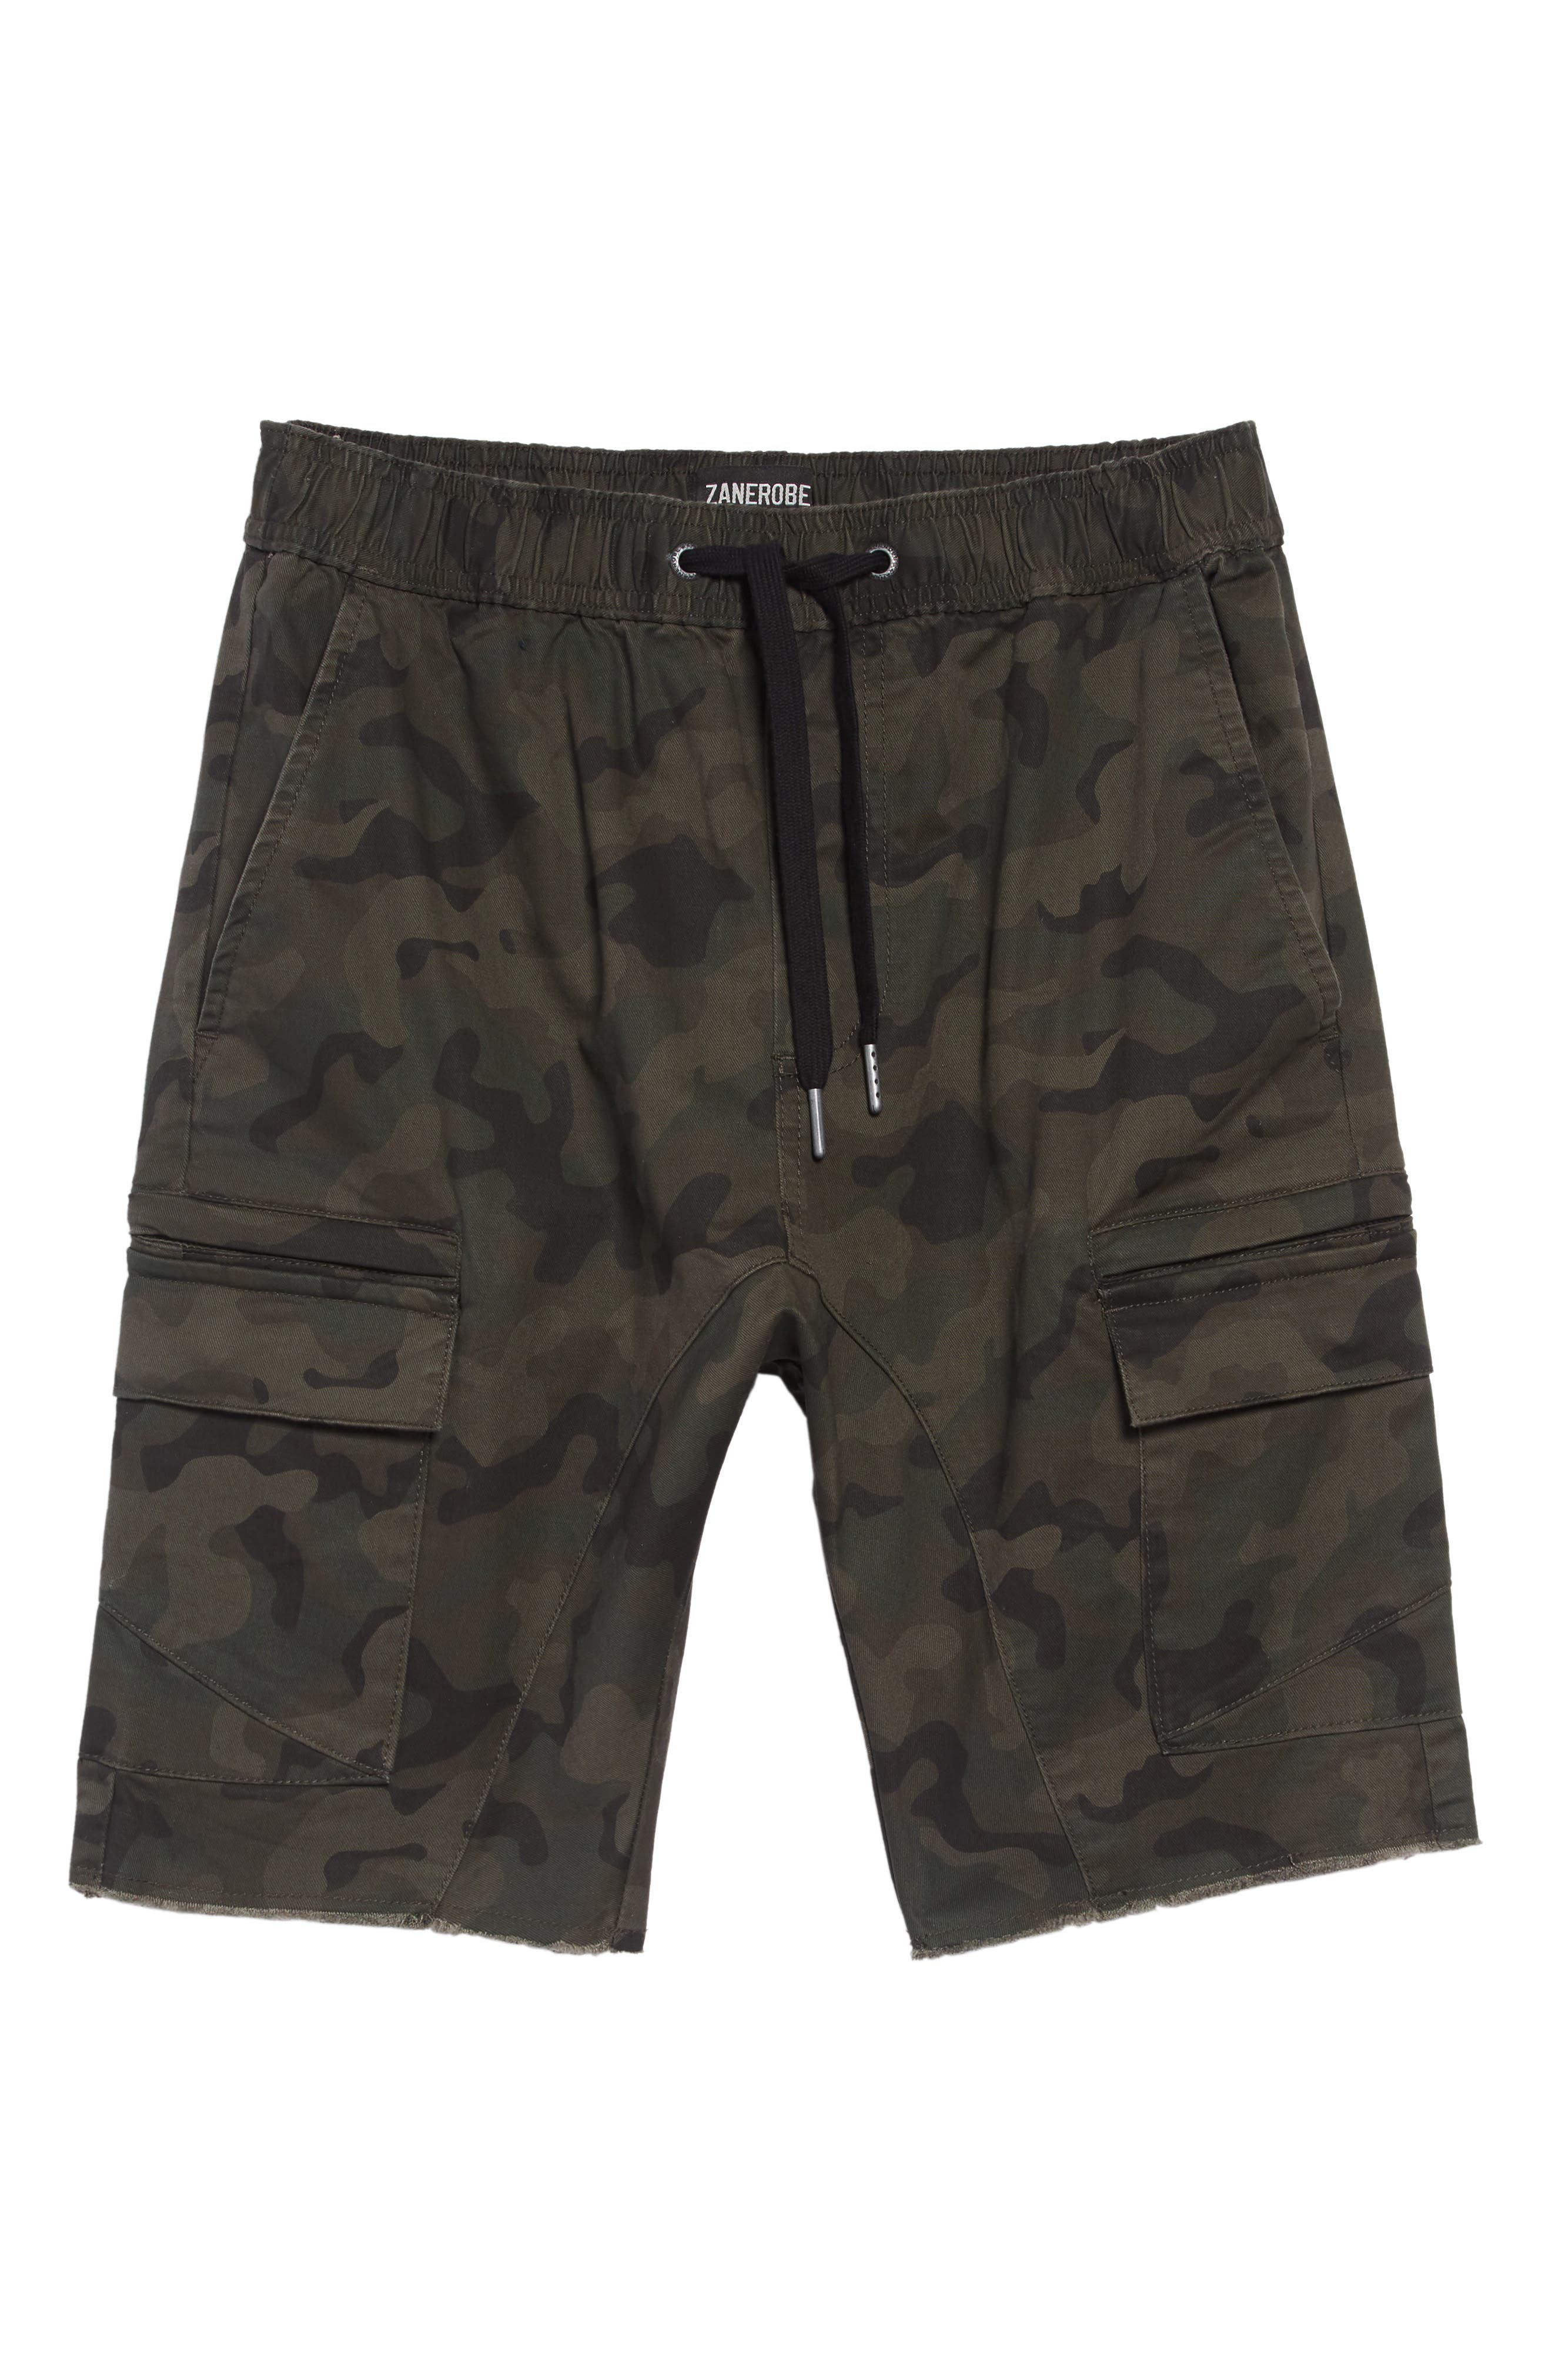 Sureshot Camo Cargo Shorts,                             Alternate thumbnail 4, color,                             302